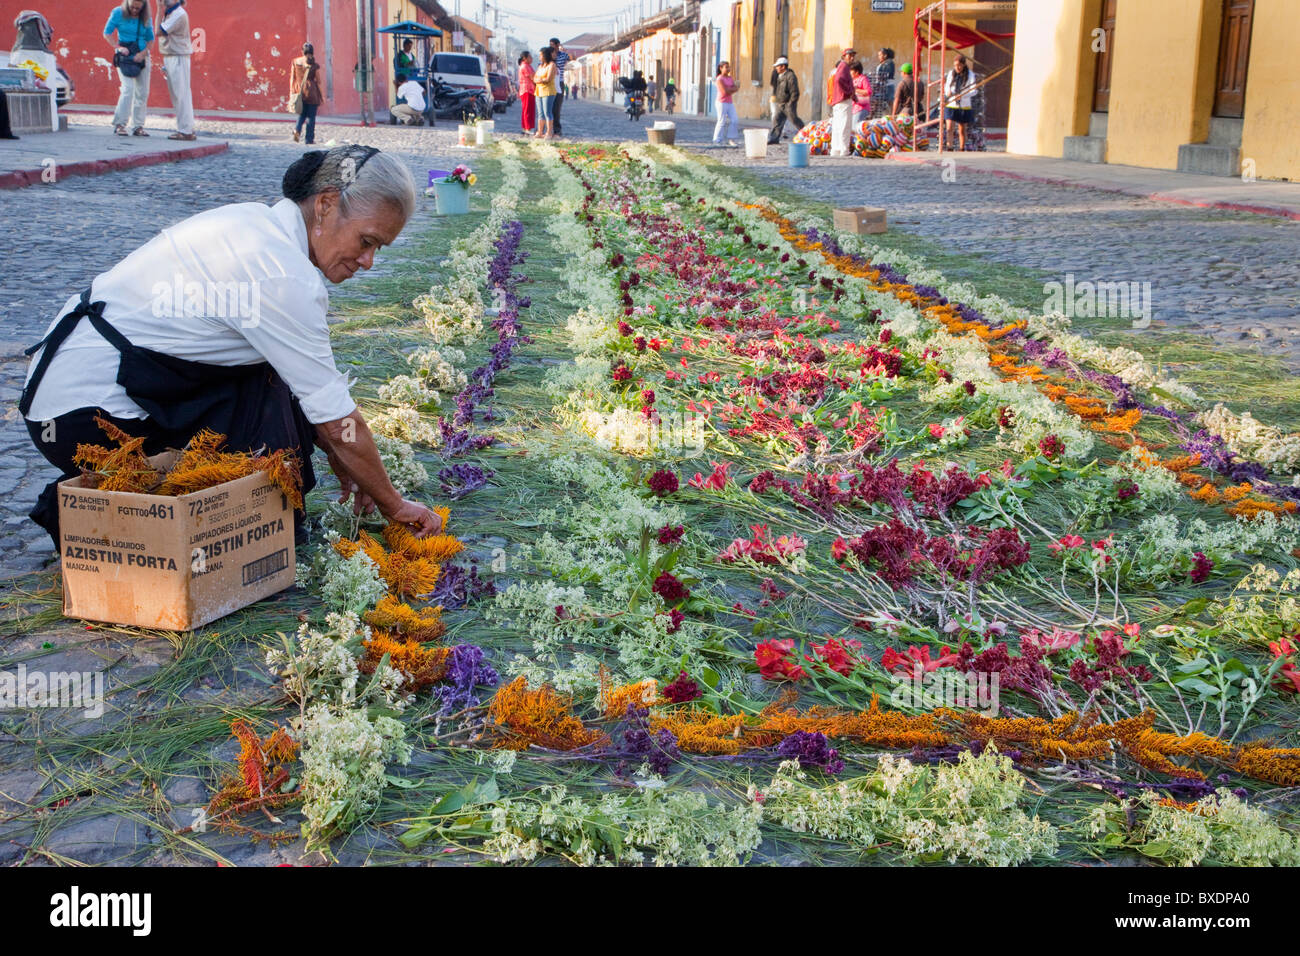 Antigua, Guatemala. Woman putting finishing touches on a carpet of flowers, pine needles, and other traditional - Stock Image